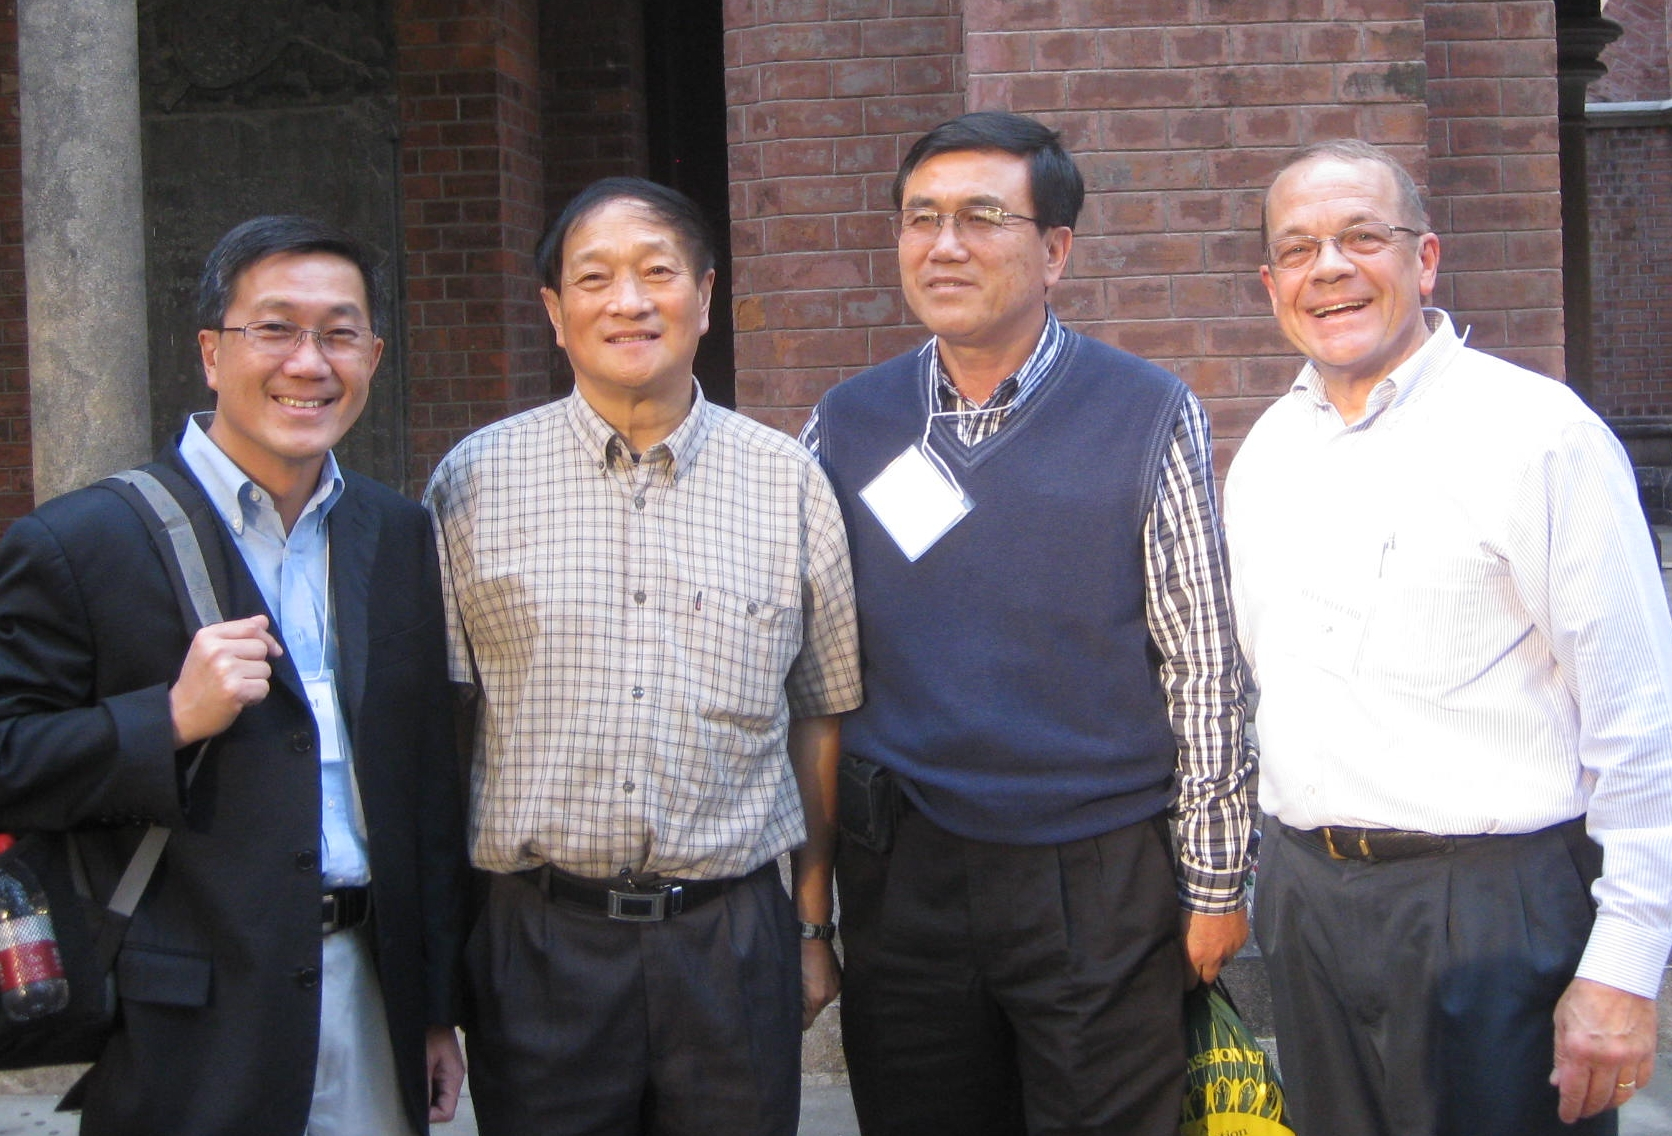 Peter Lim, Rev. Bao, Choon Lim, and Jeff Ritchie